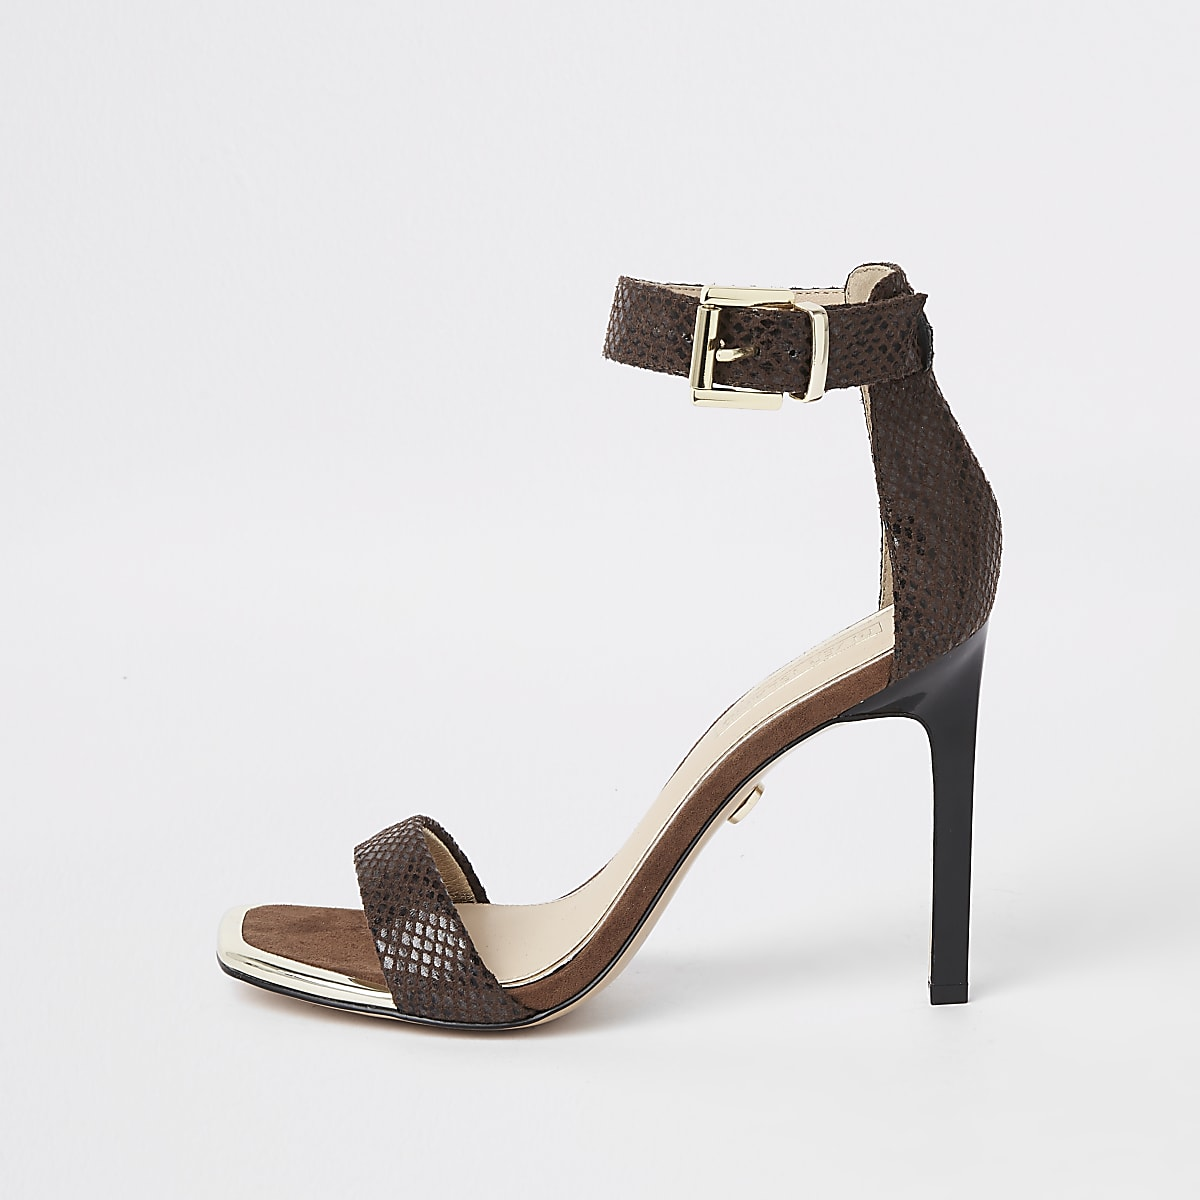 Brown croc embossed barely there sandals